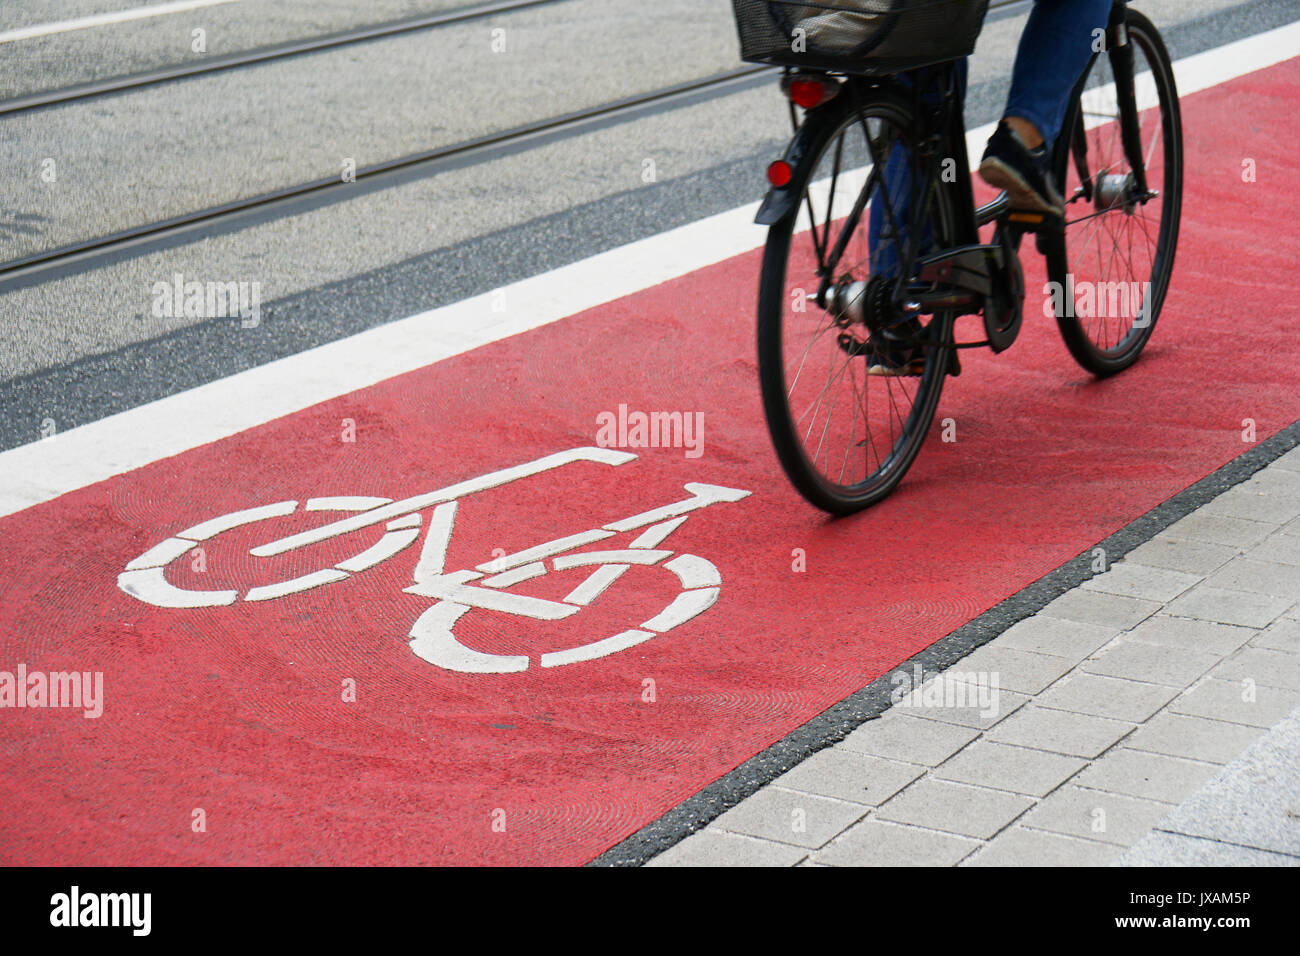 designated bike lane or cycle highway - Stock Image